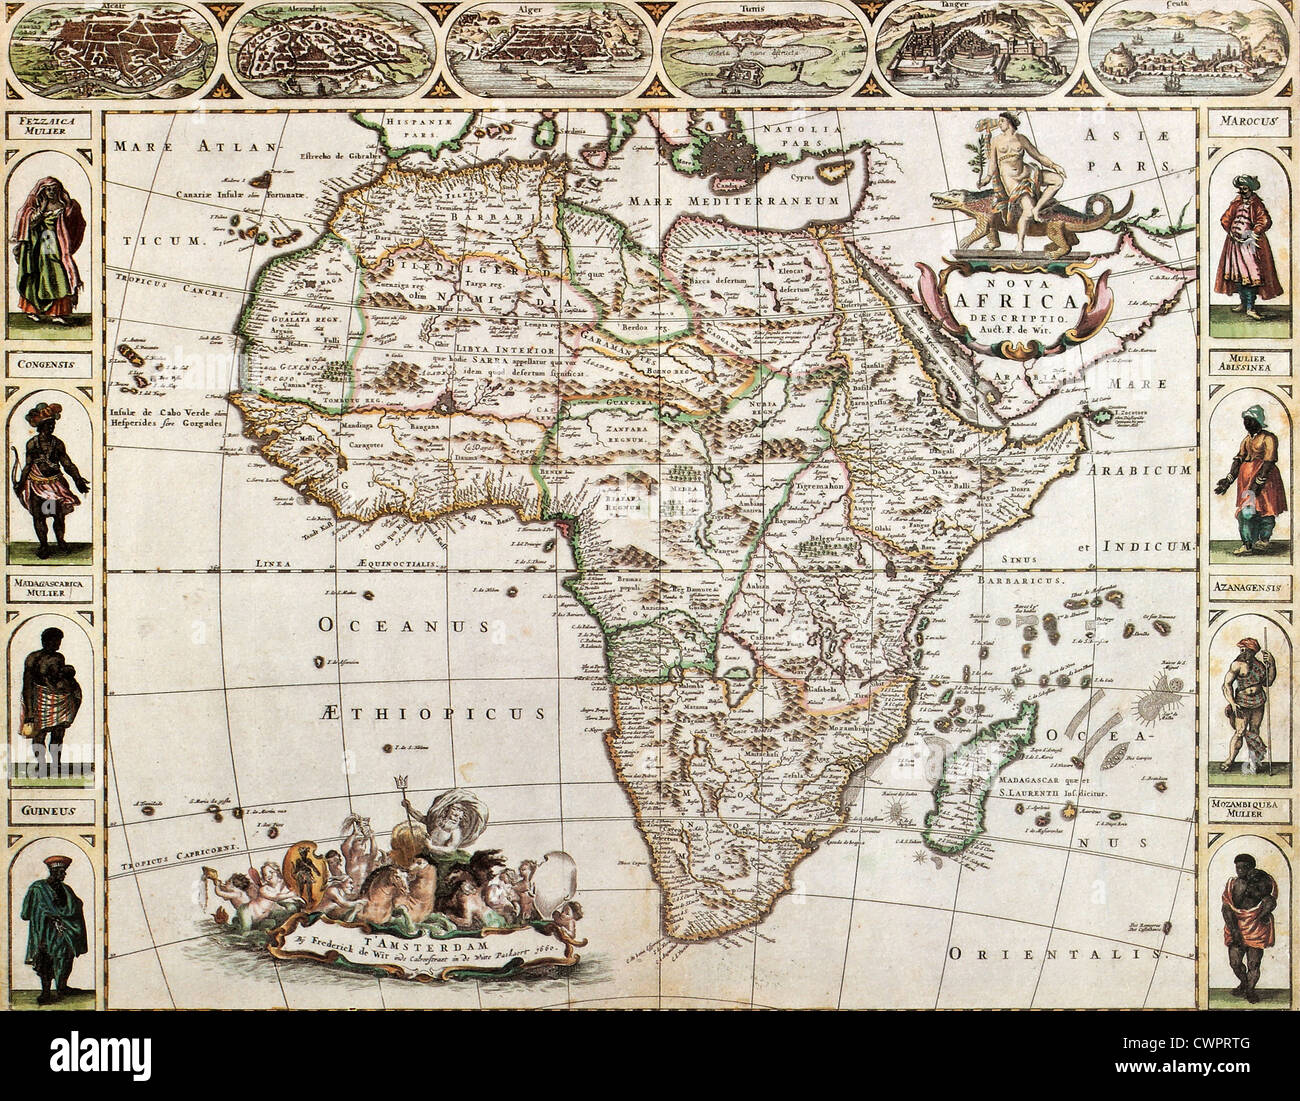 Africa old map Stock Photo: 50288800 - Alamy